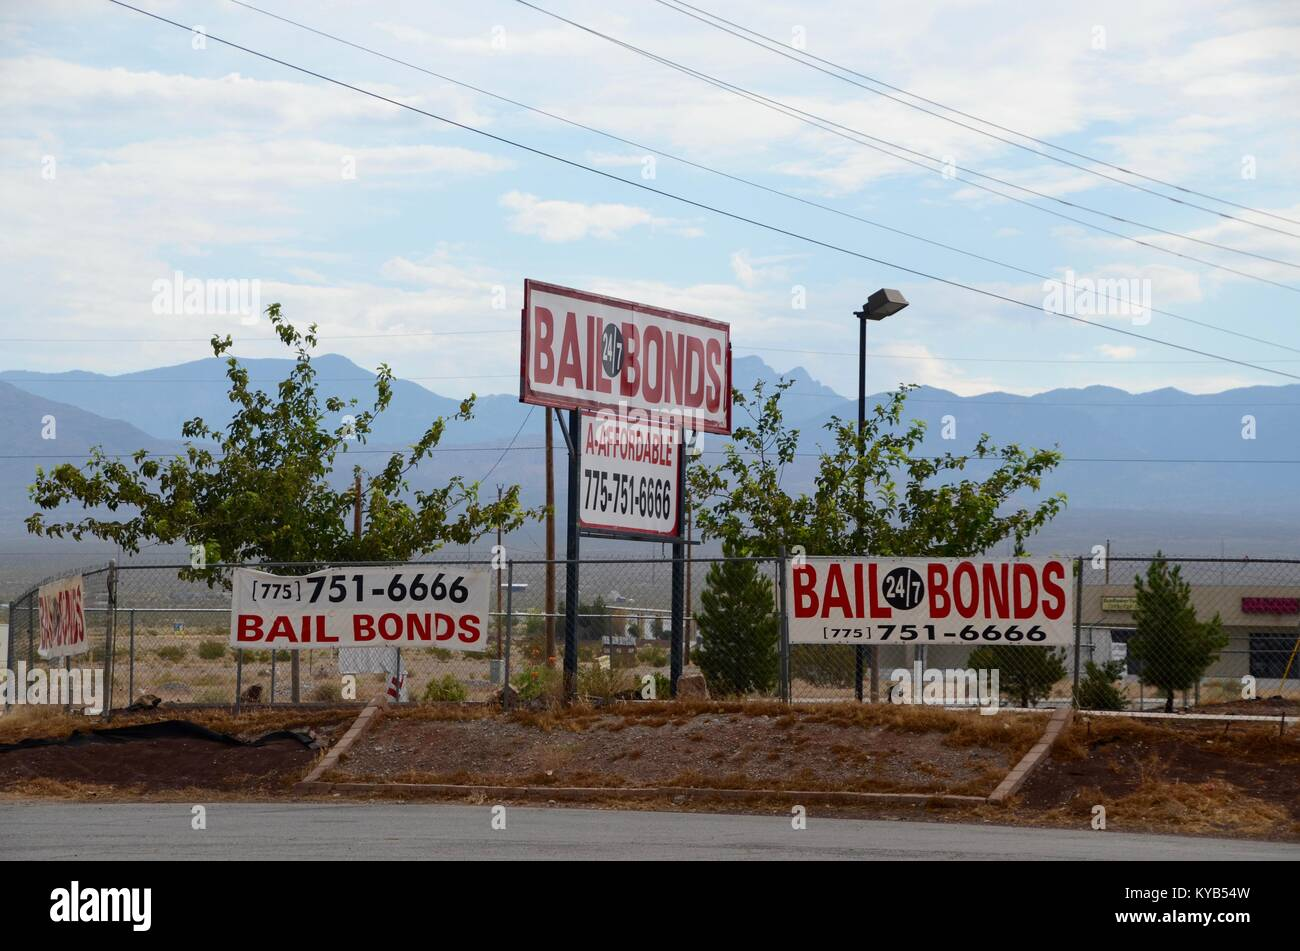 a bail bonds service advertised on signs in nevada USA - Stock Image